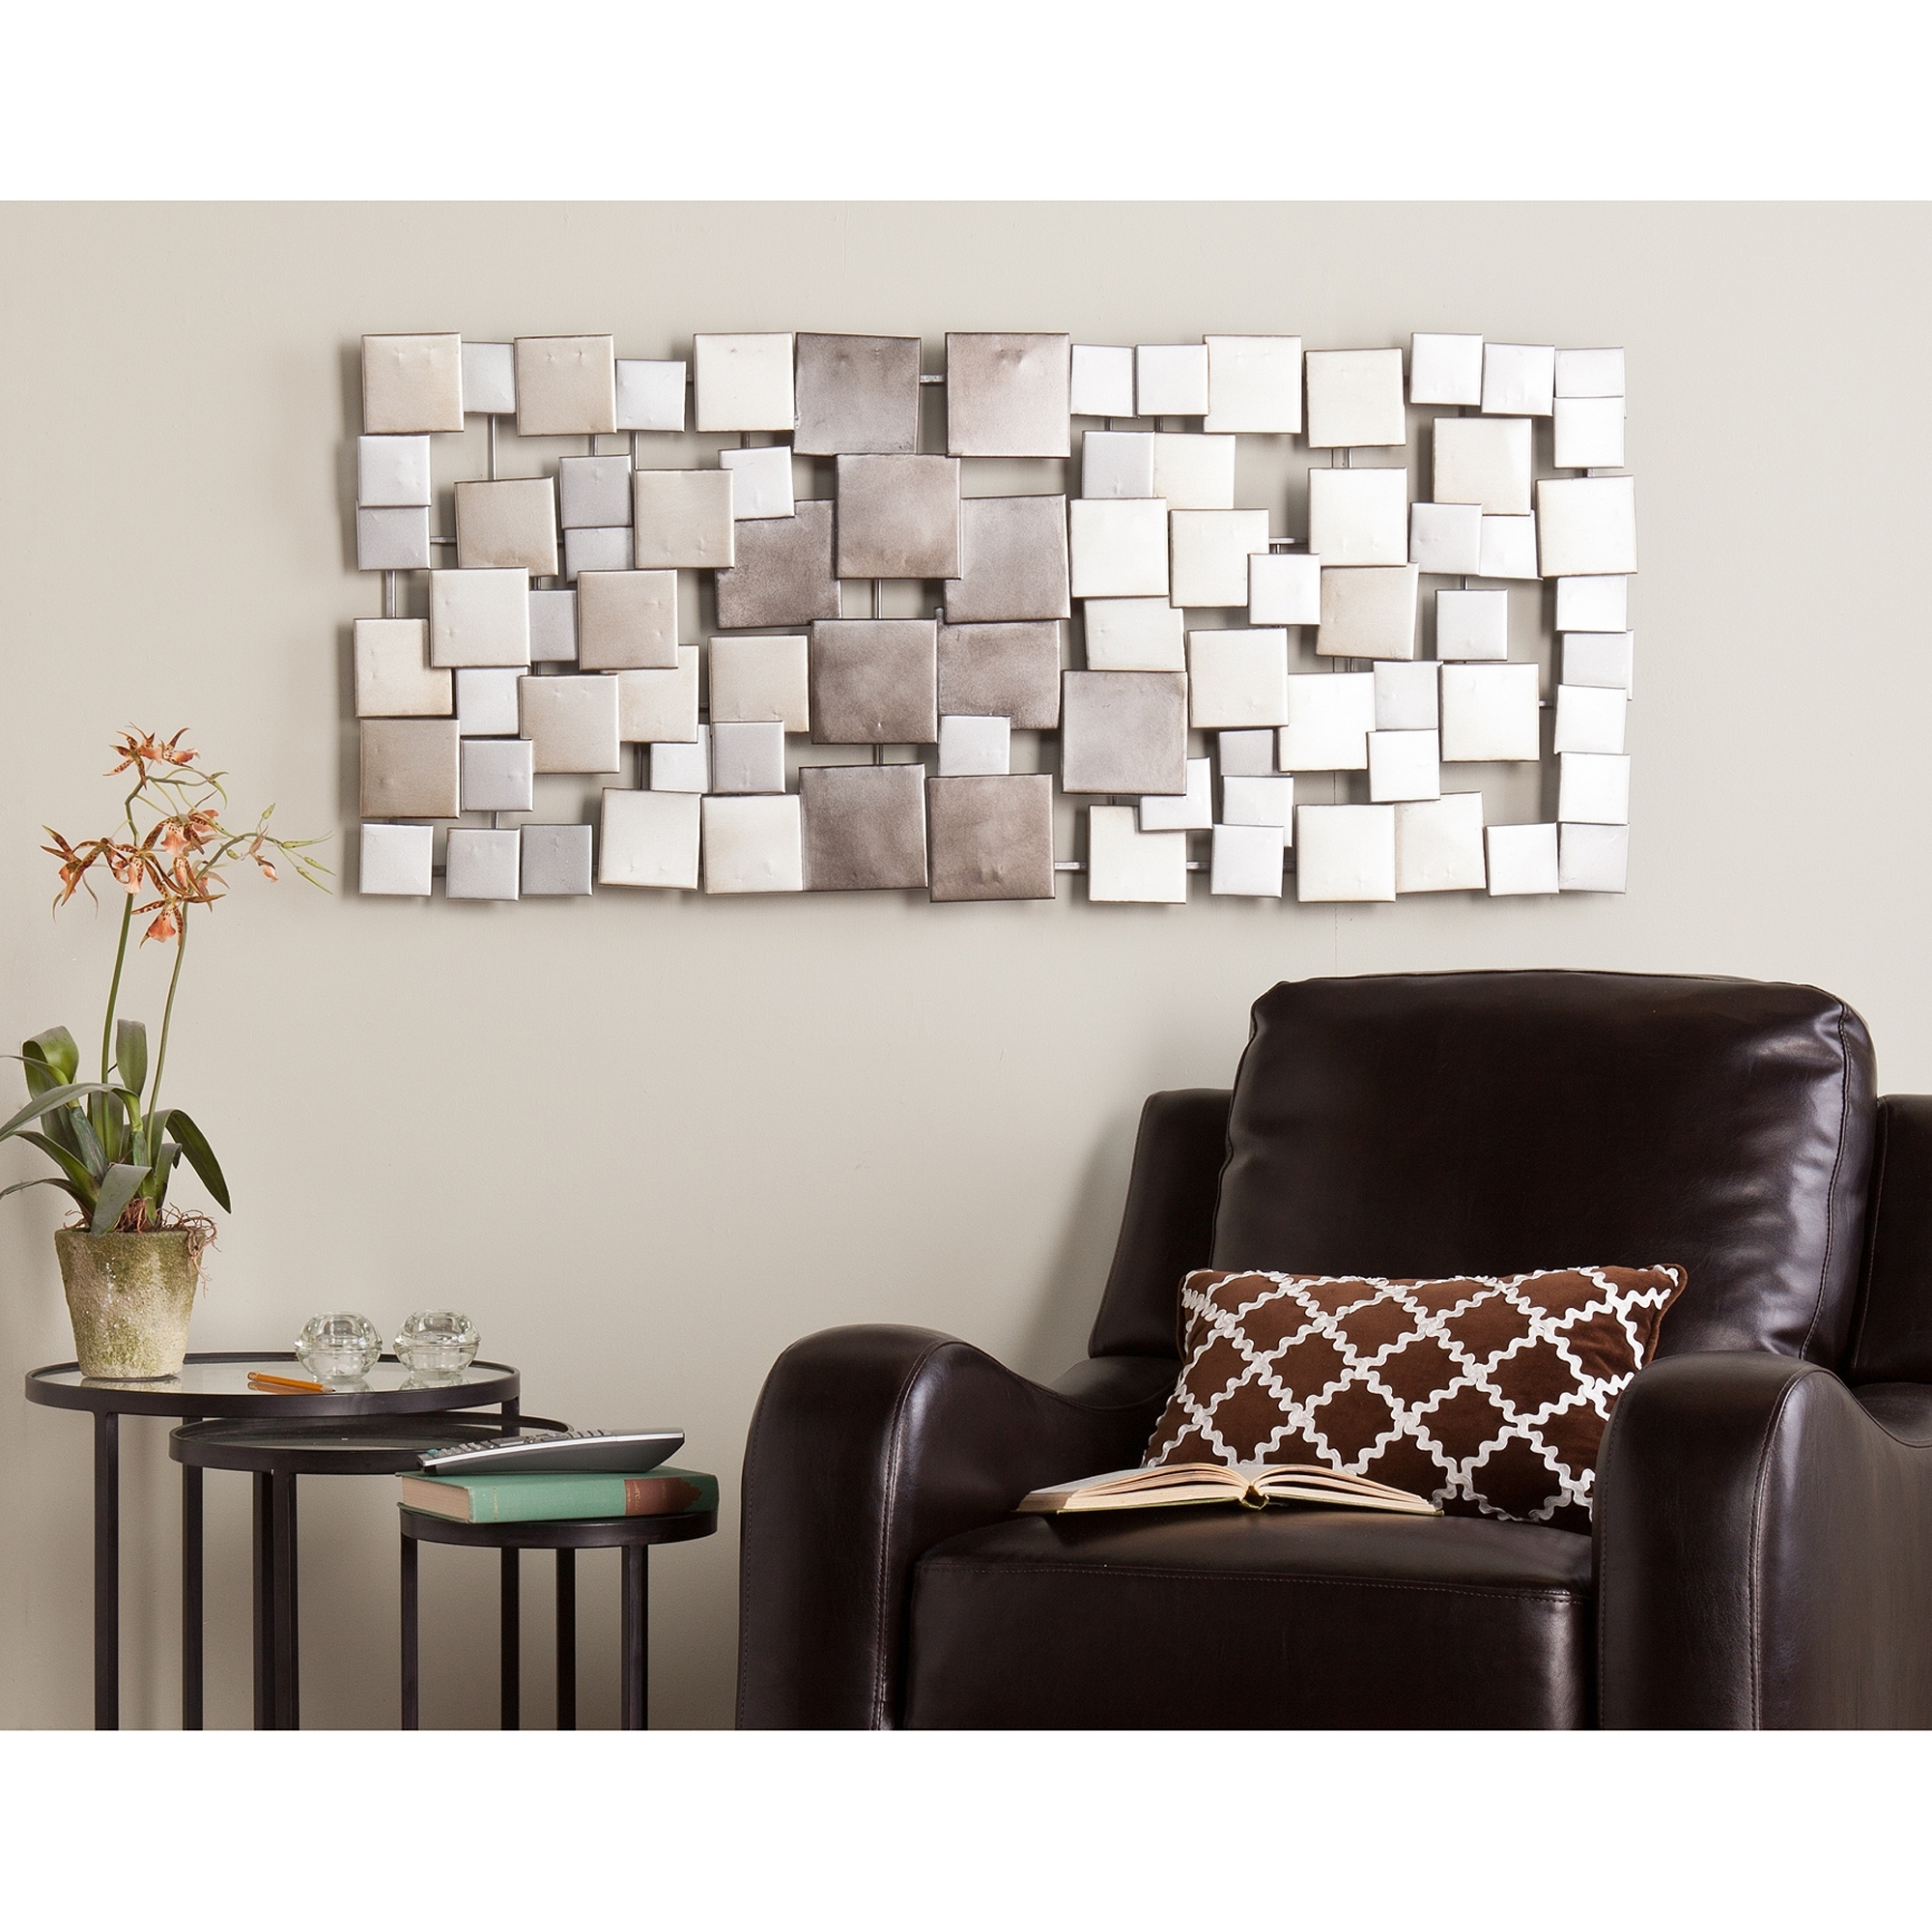 Famous Inexpensive Metal Wall Art With Regard To Metal Wall Art – Walmart (View 3 of 15)